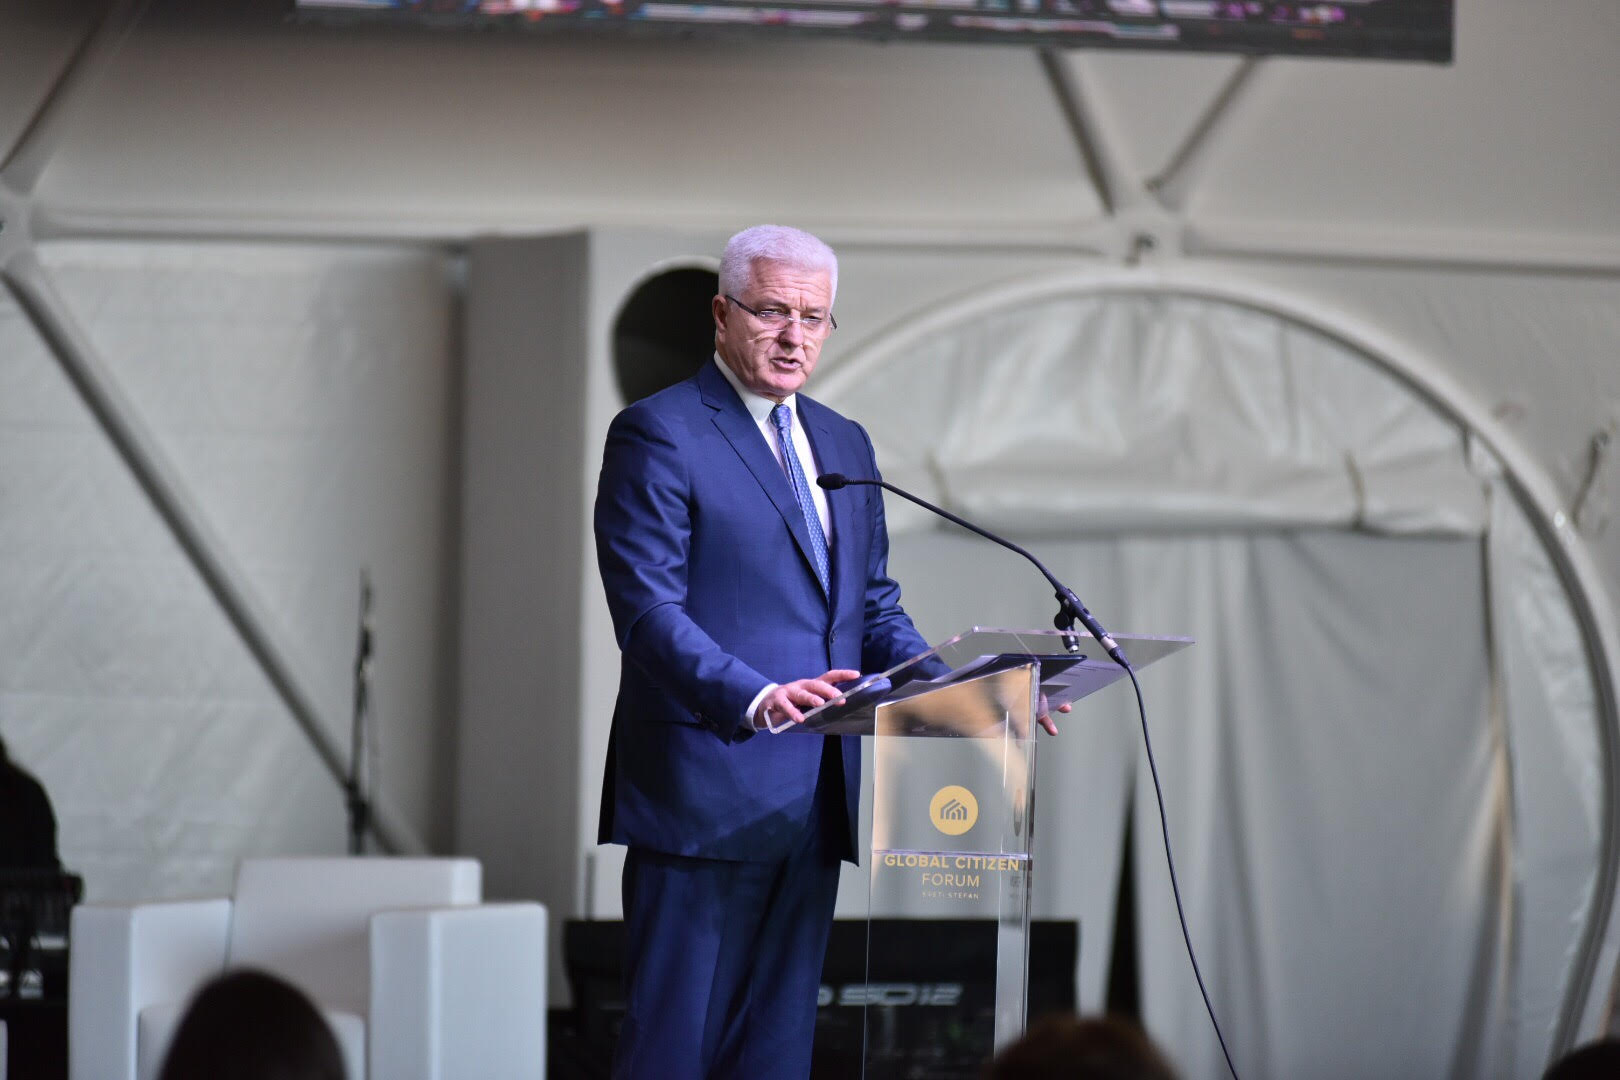 Global Citizen Forum: Following the vision of Njegos – a citizen of the world